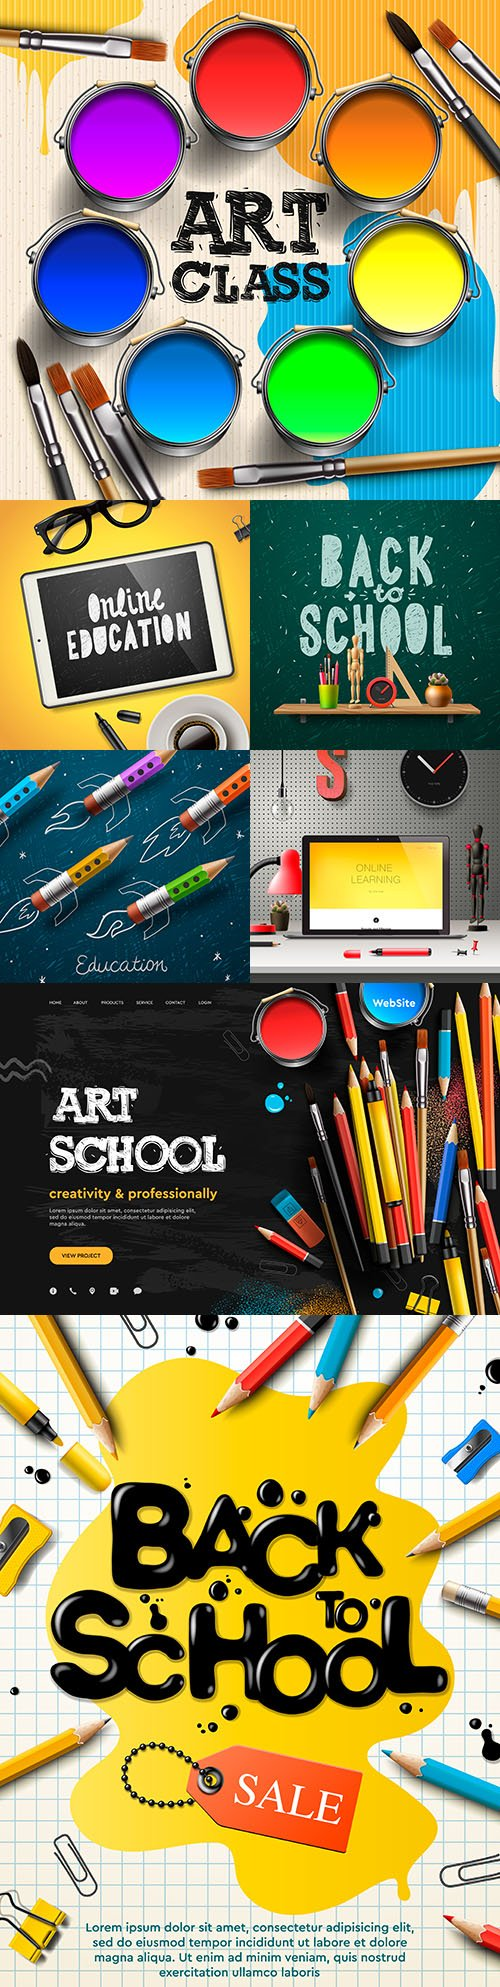 Back to school and art class collection illustration 3